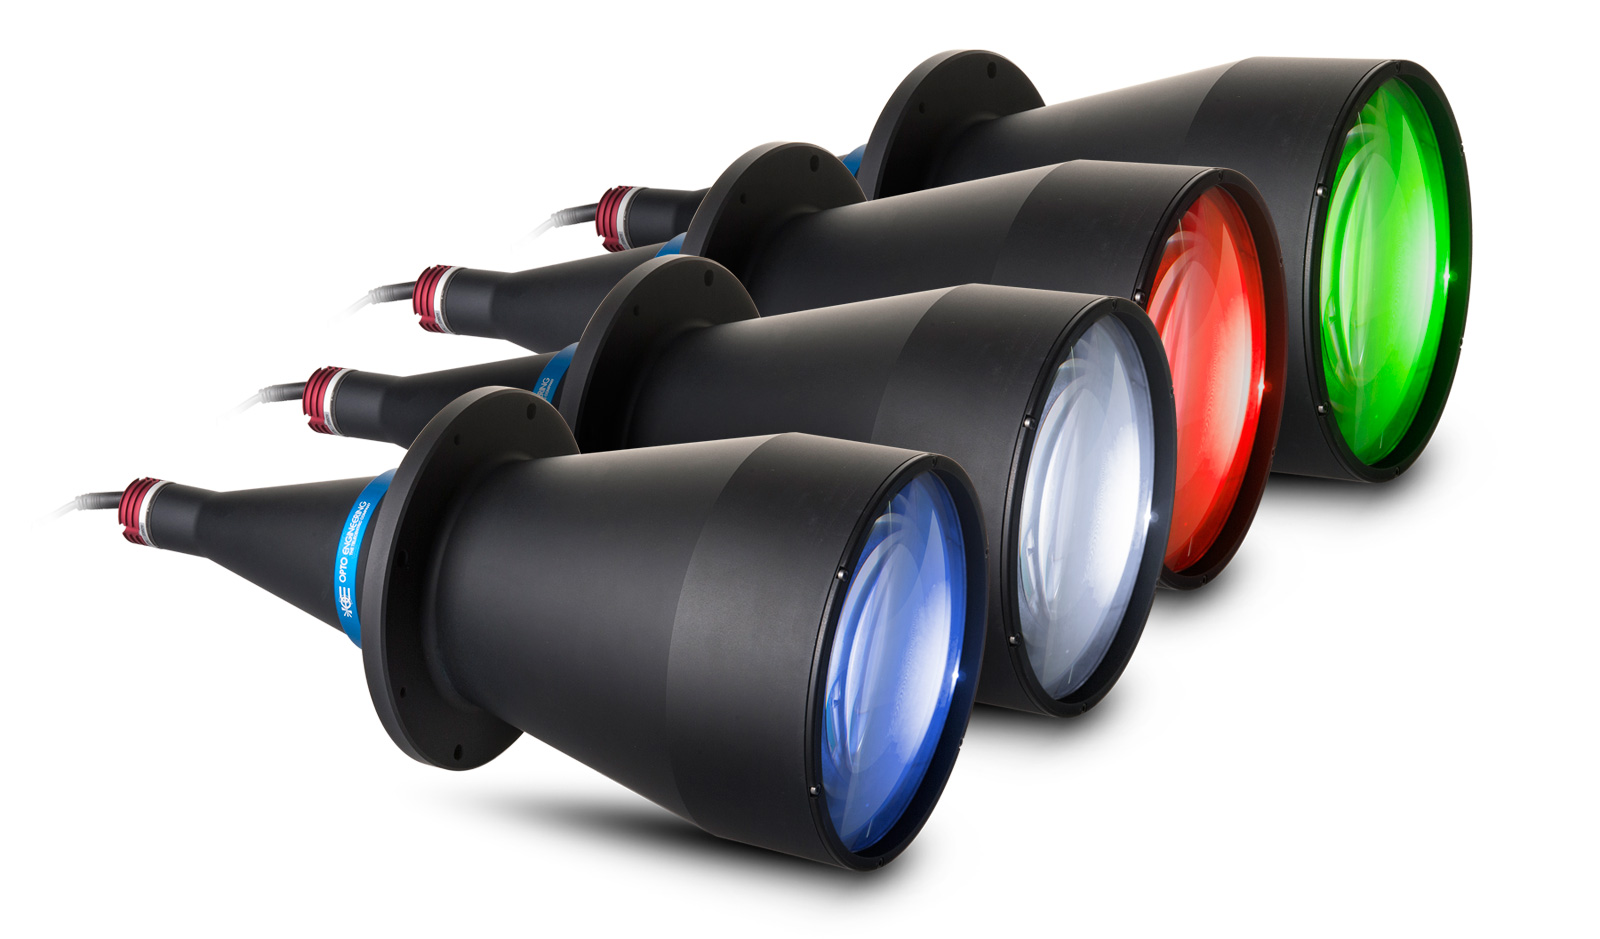 Available colors of LTCLHP illuminators